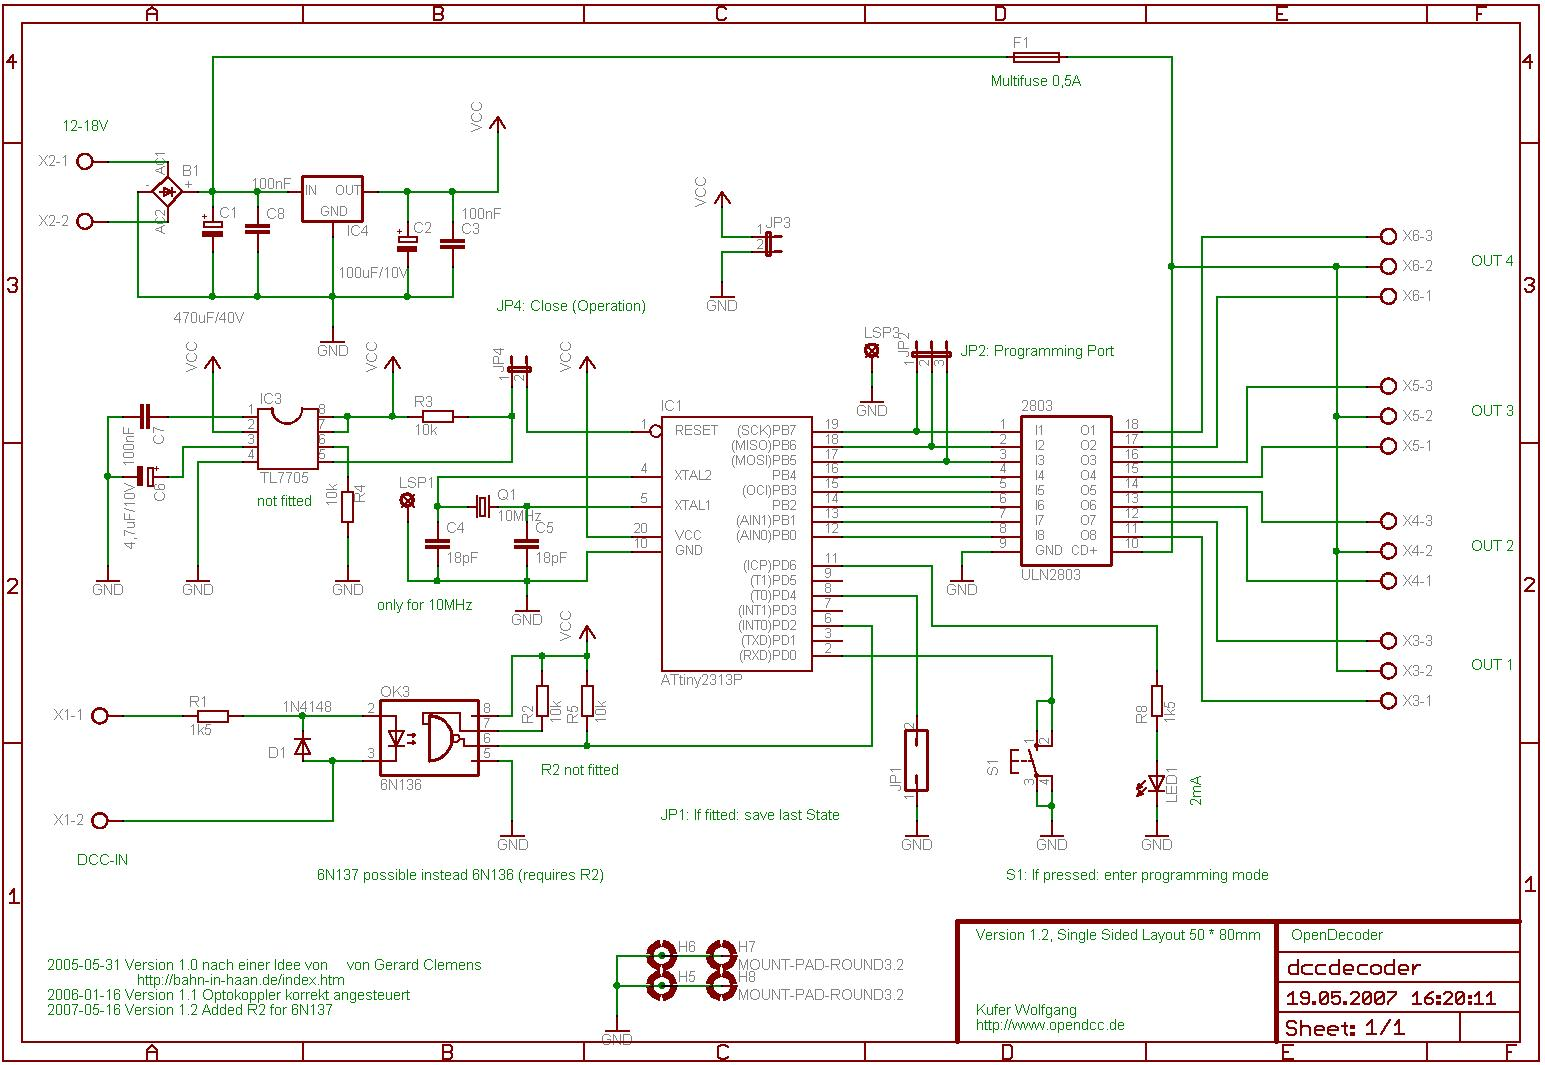 OpenDecoder - for DCC - Schematics